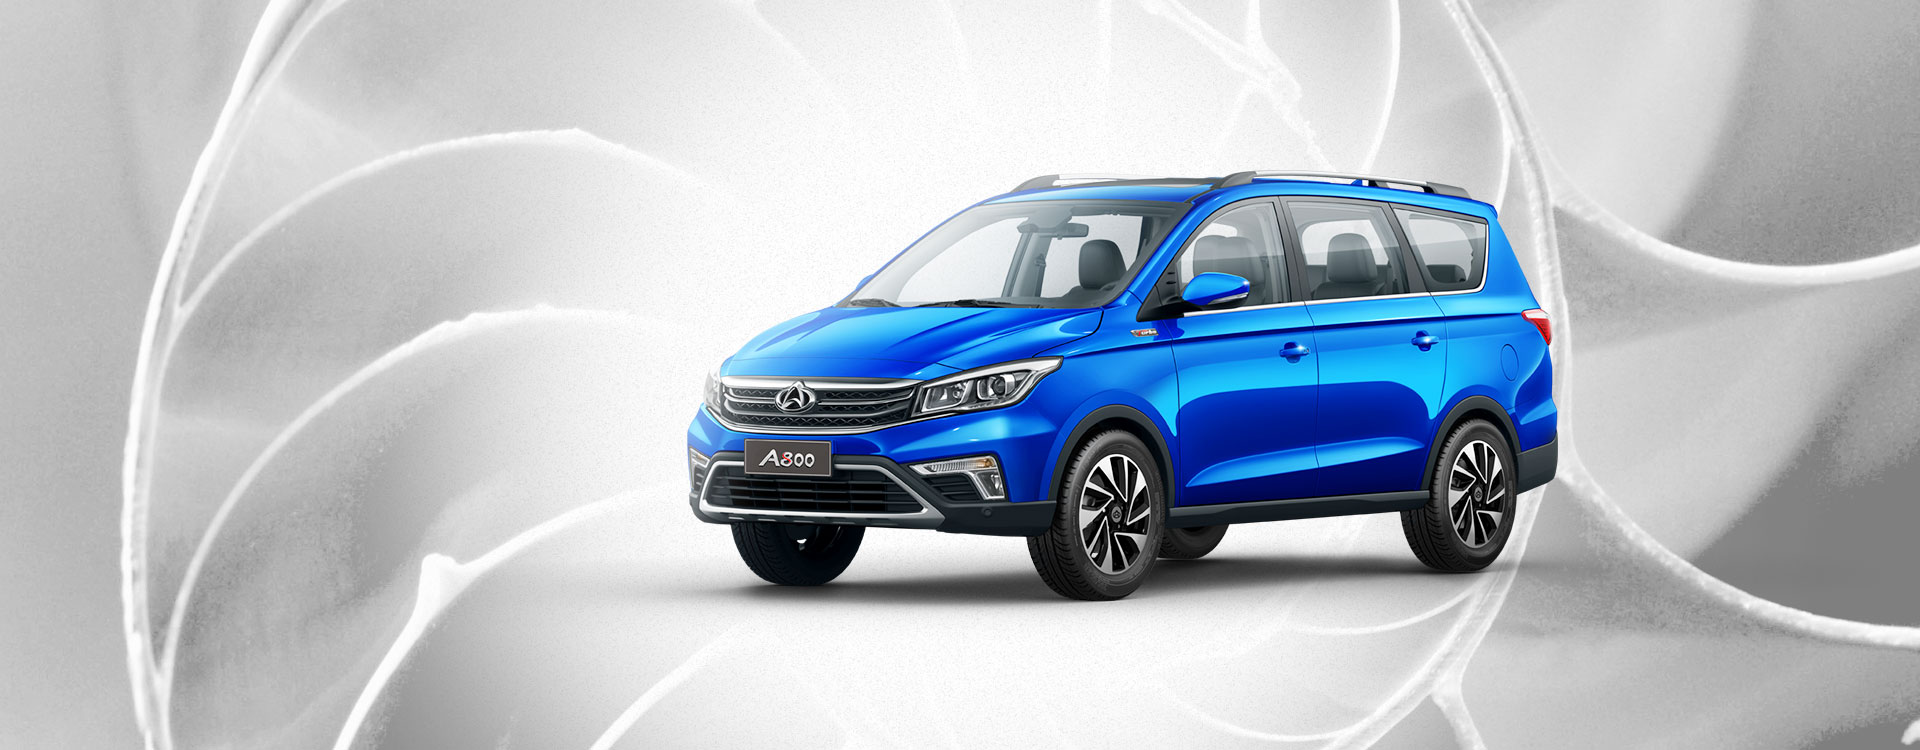 Upcoming Changan Vehicles in Pakistan 21